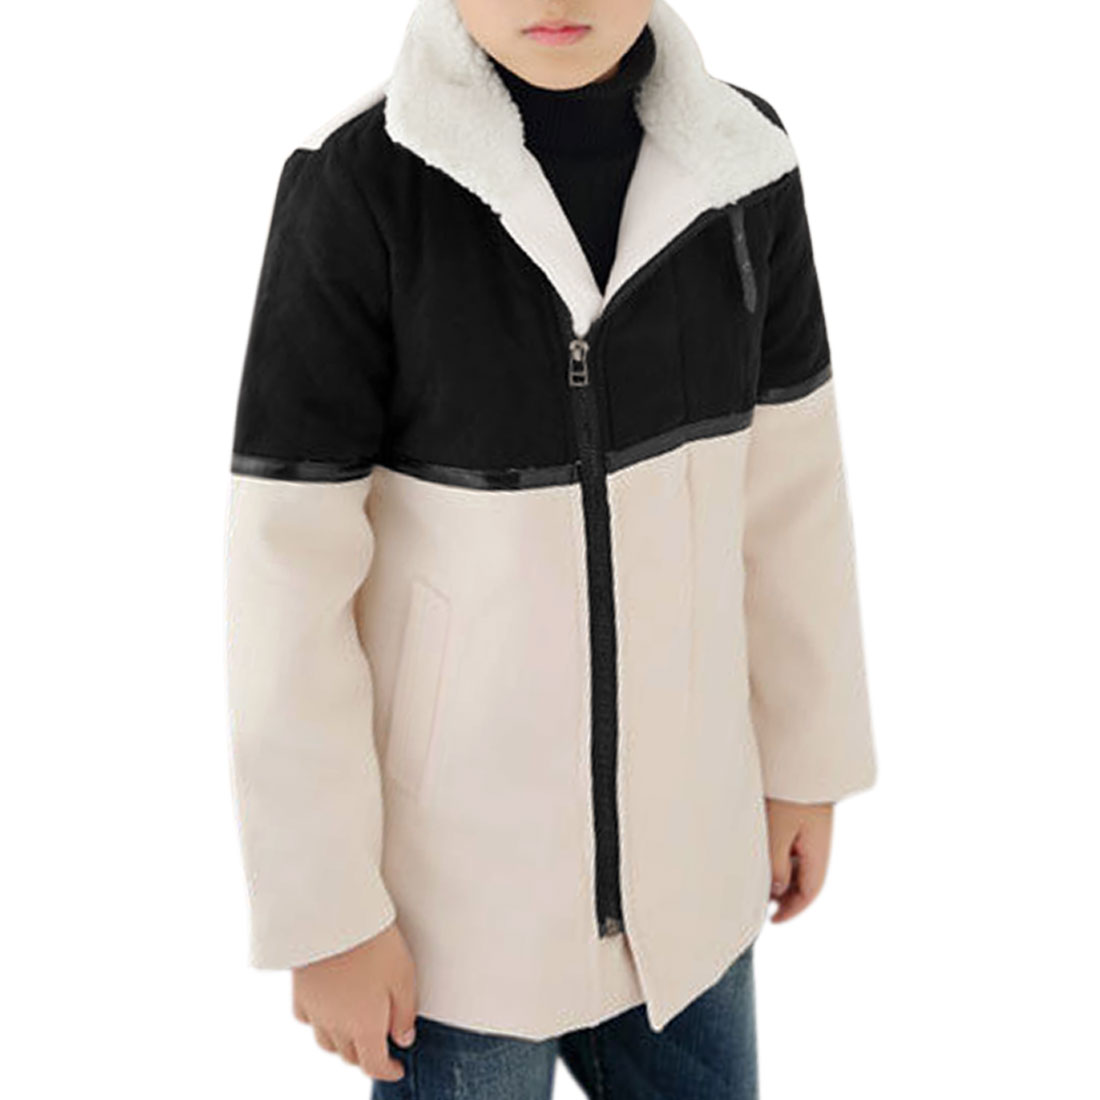 Boys Convertible Collar Zippered Fully Lined Casual Coat Allegra Kids Beige 20